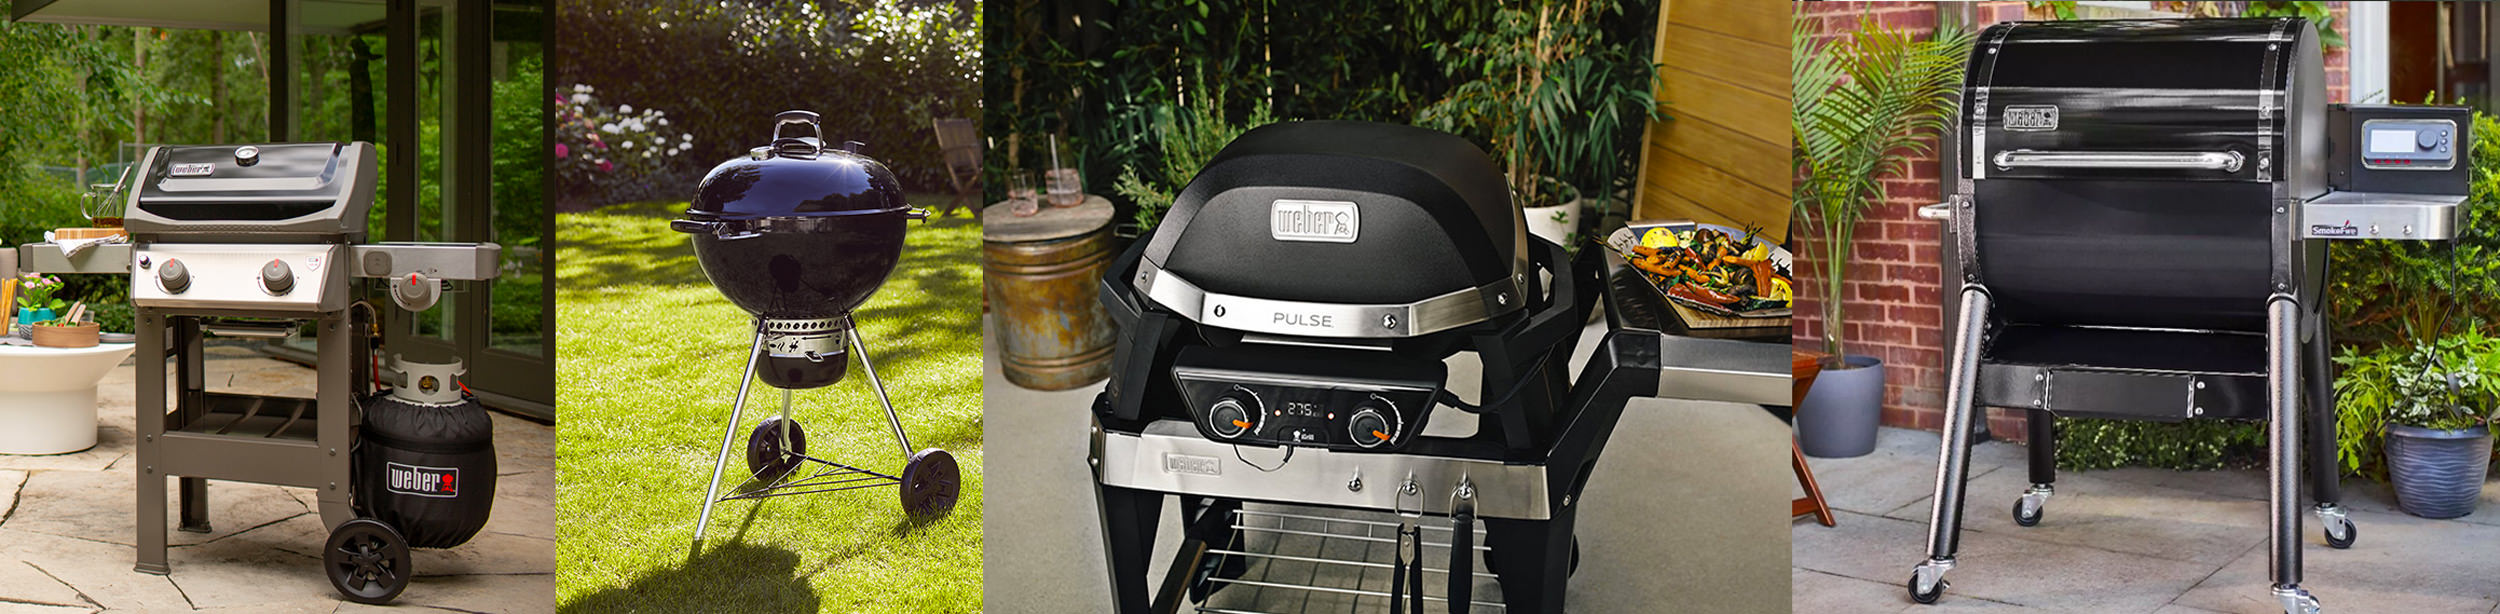 ban-weber-barbecues